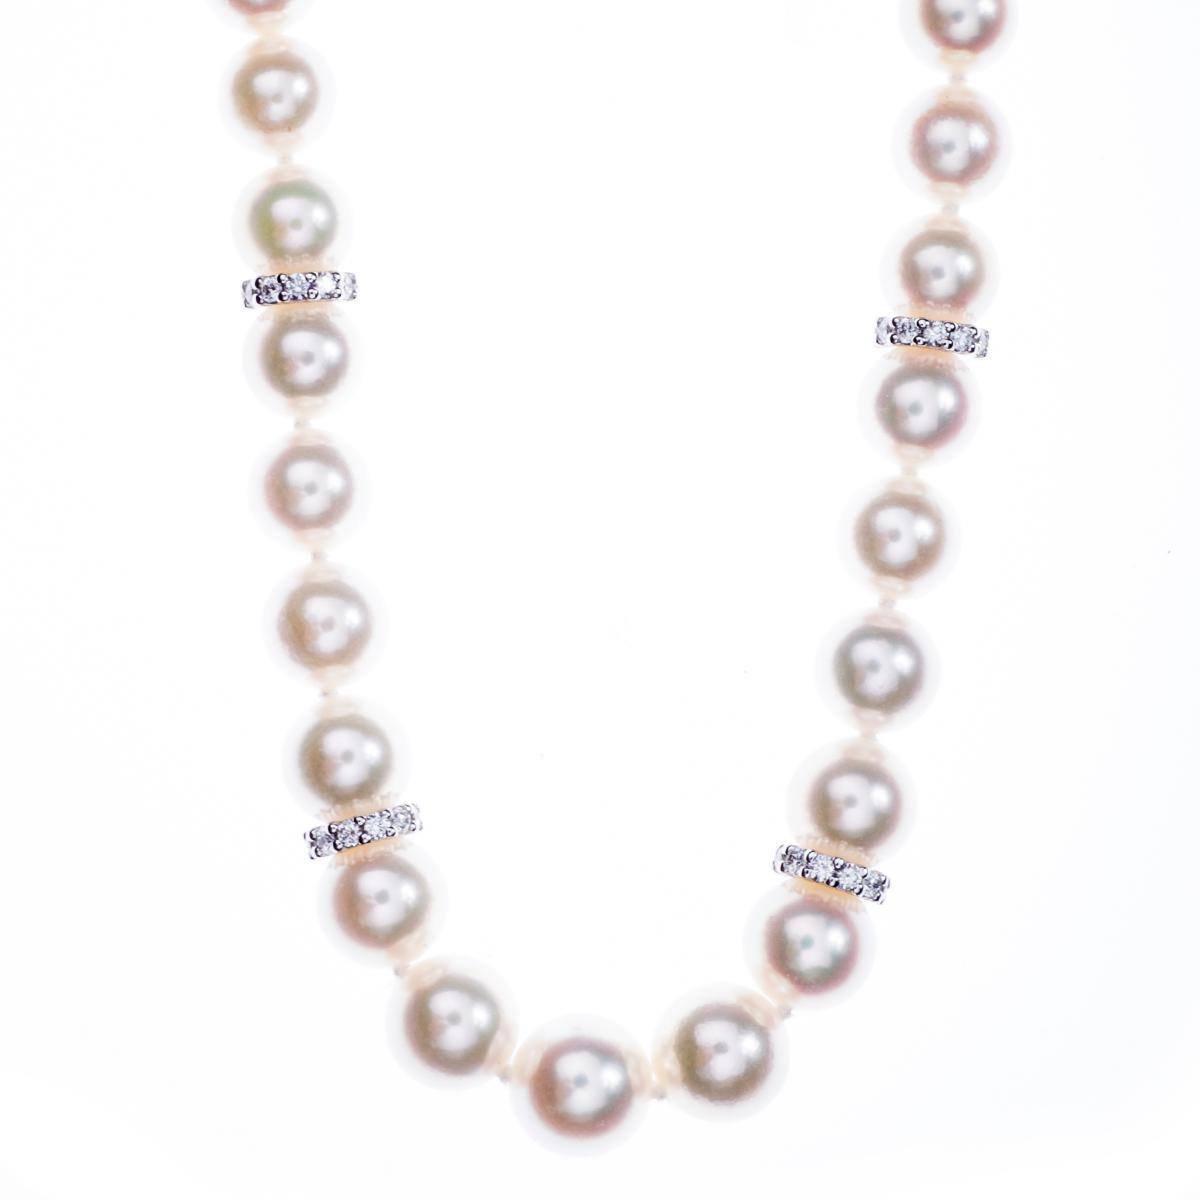 pearls check vintage woriginal w authentic mikimoto original pearl necklace myriad box